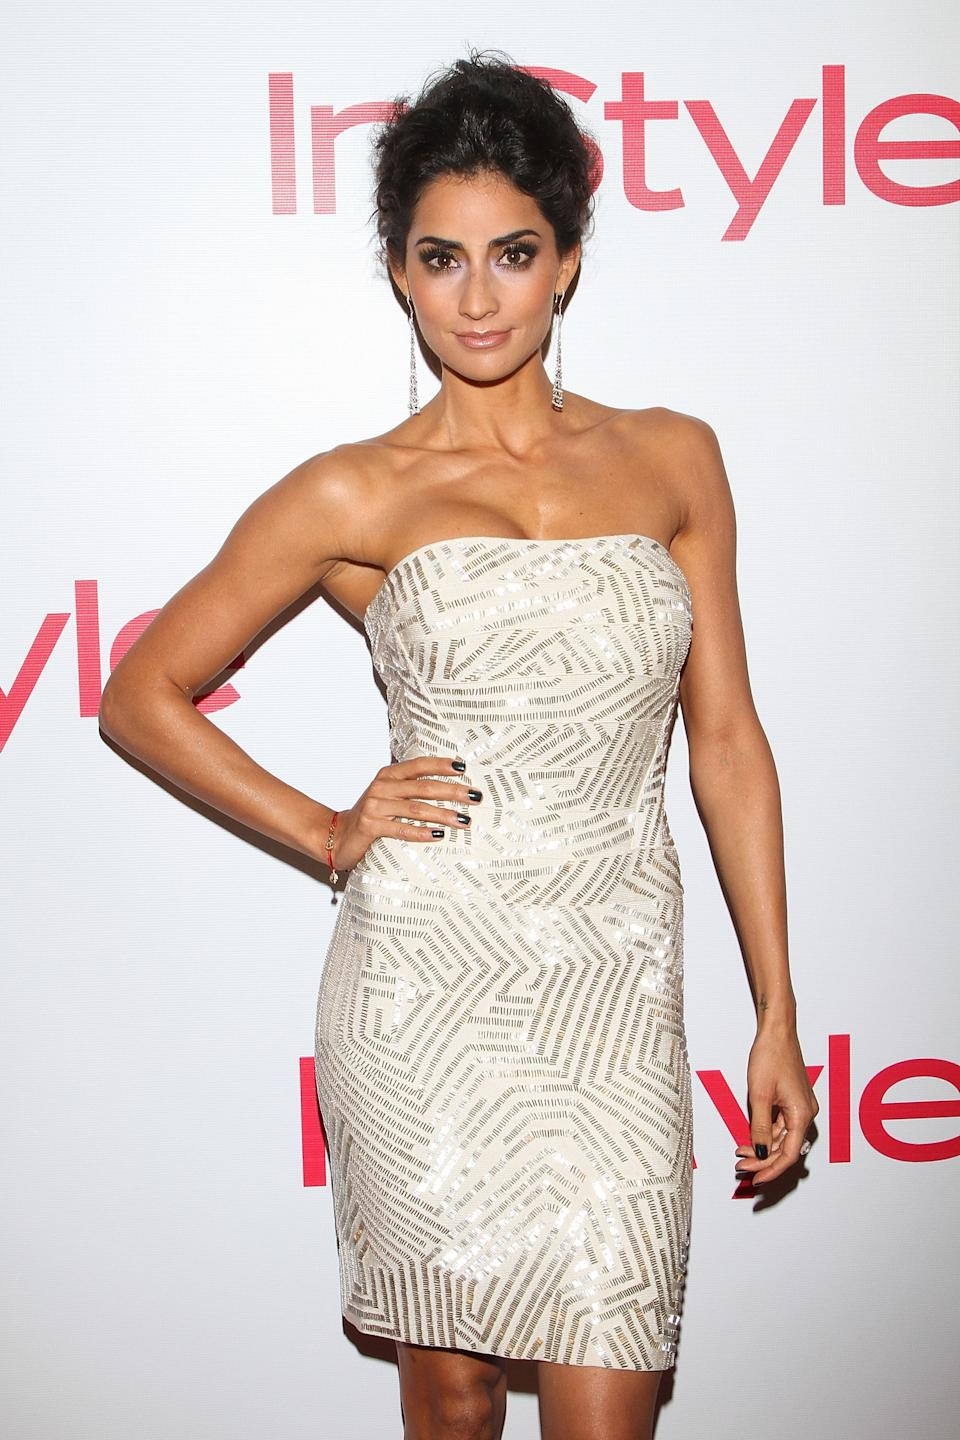 MEXICO CITY, MEXICO - SEPTEMBER 07:  Actress Paola Nuñez attends the InStyle Magazine Mexico's 5th Anniversary at Teatro Metropolitan on September 7, 2011 in Mexico City, Mexico.  (Photo by Victor Chavez/WireImage)